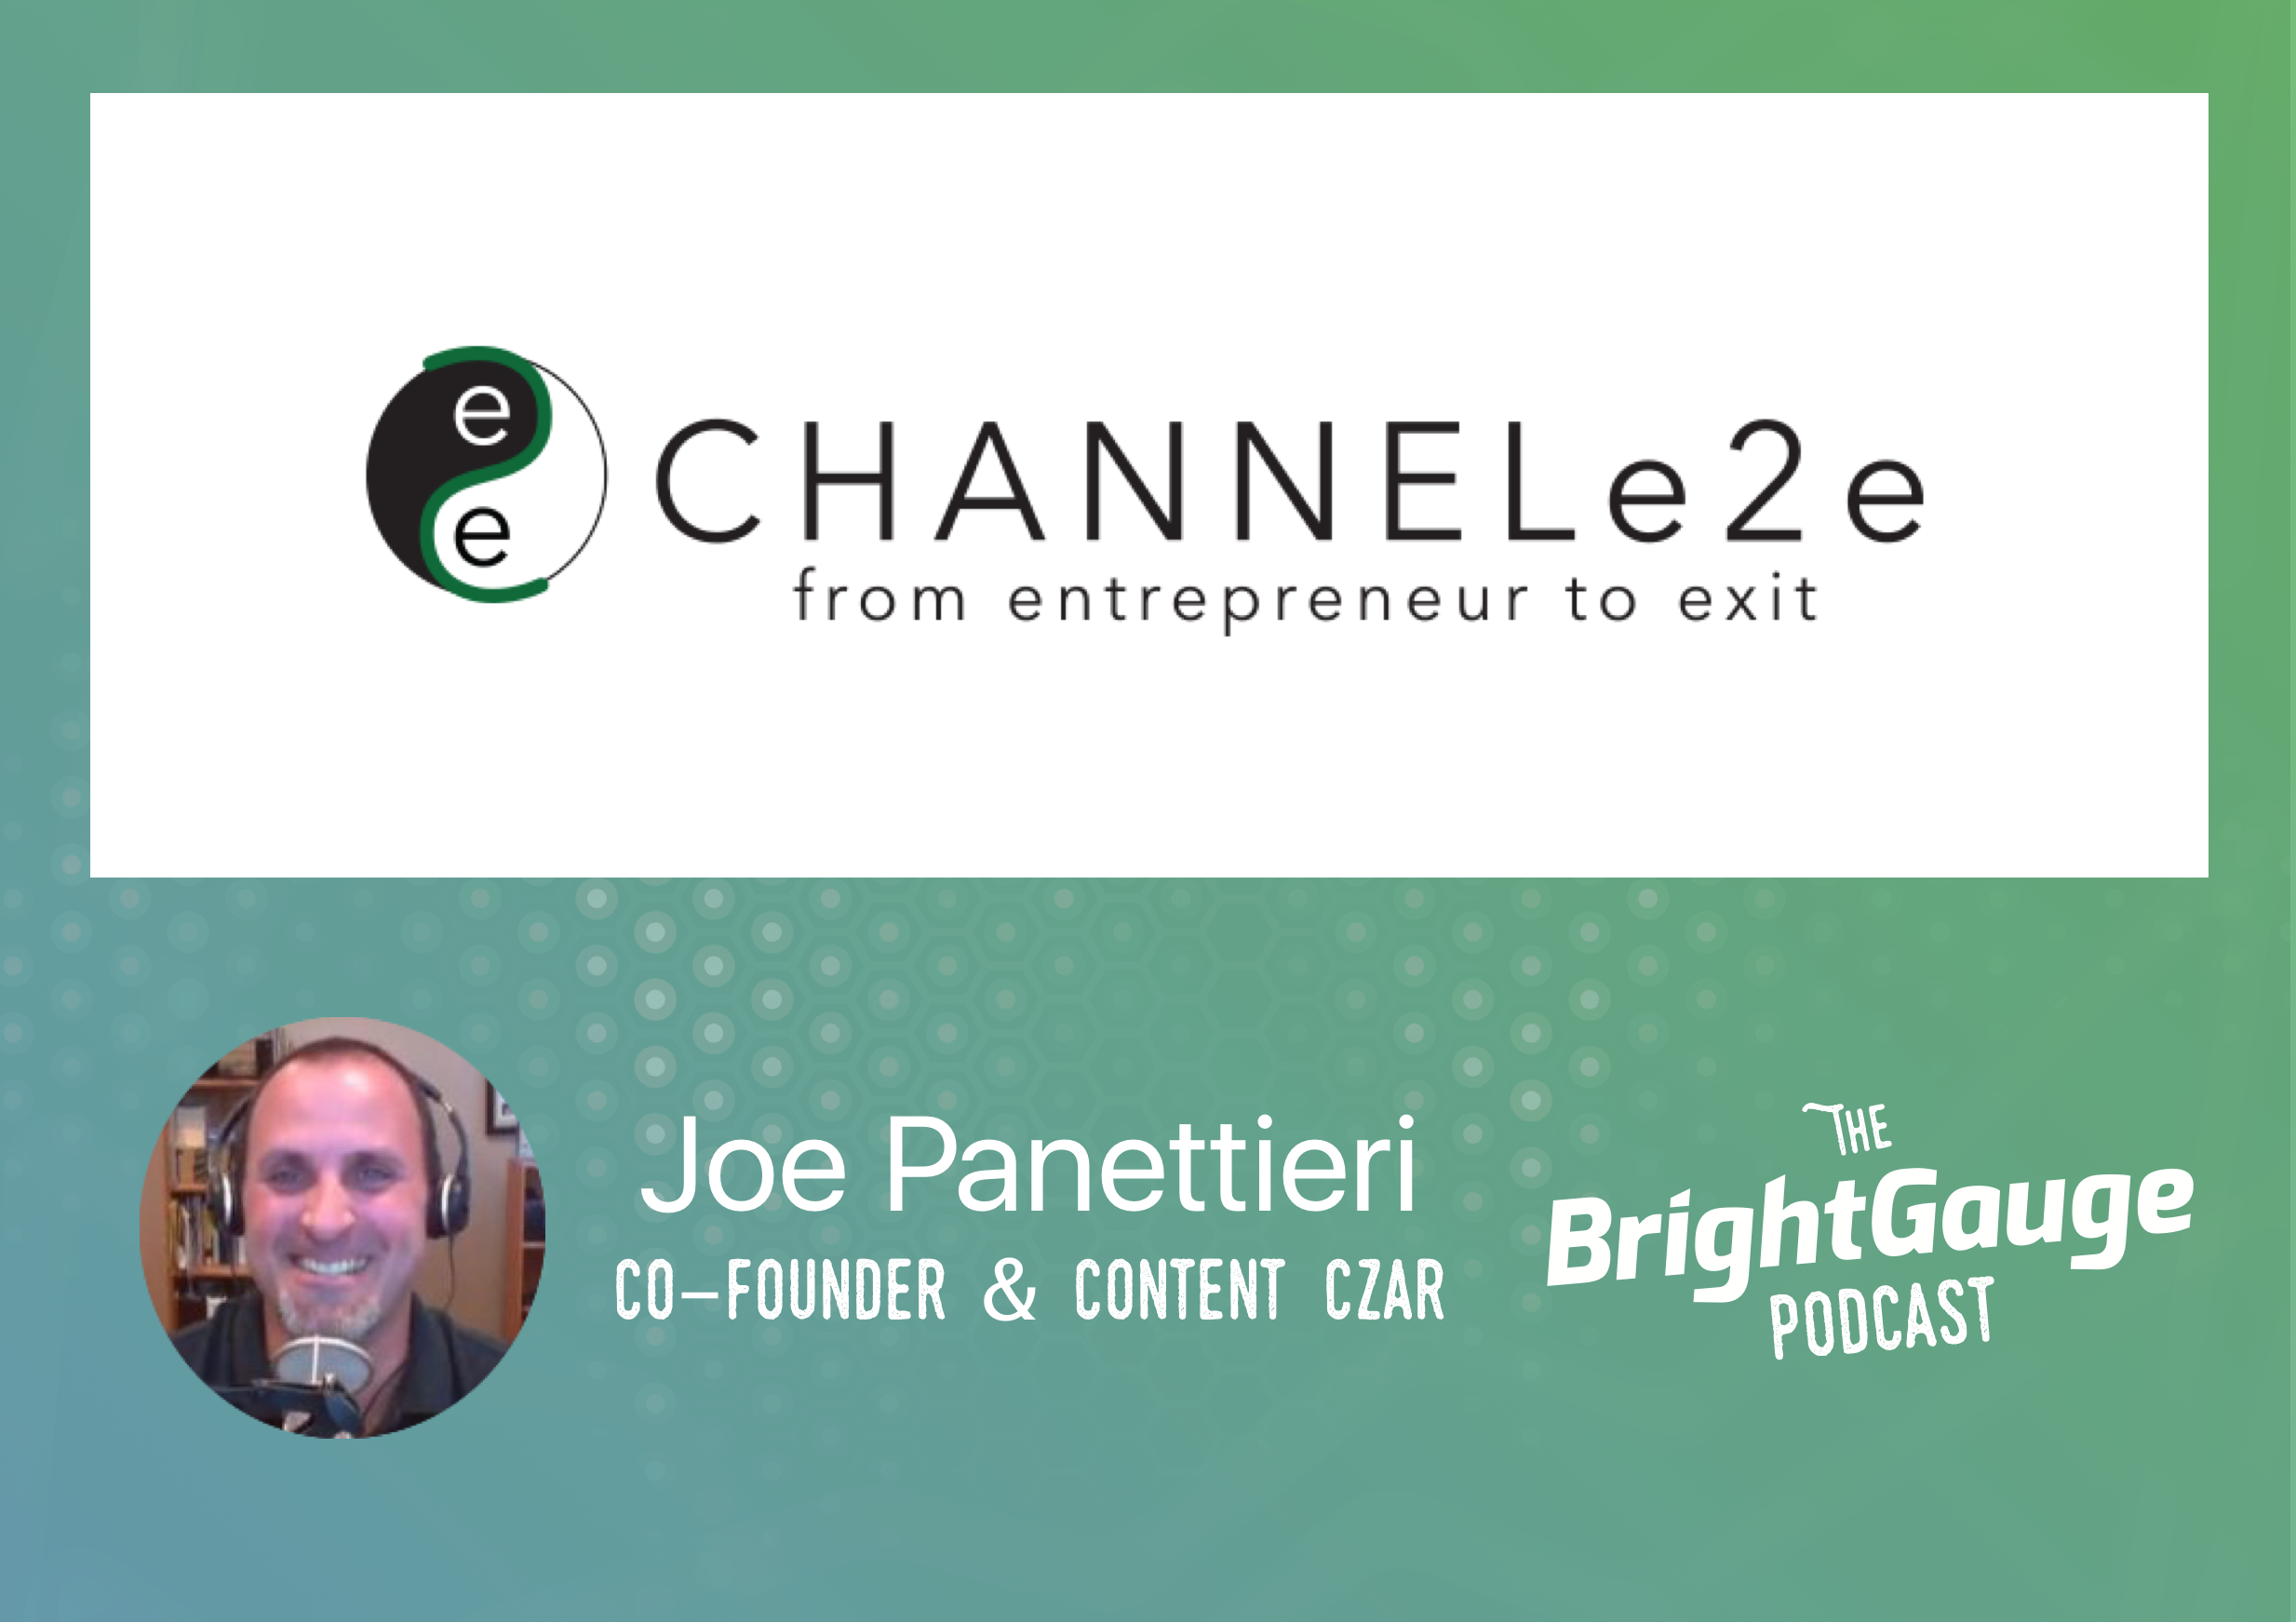 [Podcast] Episode 14 with Joe Panettieri of ChannelE2E